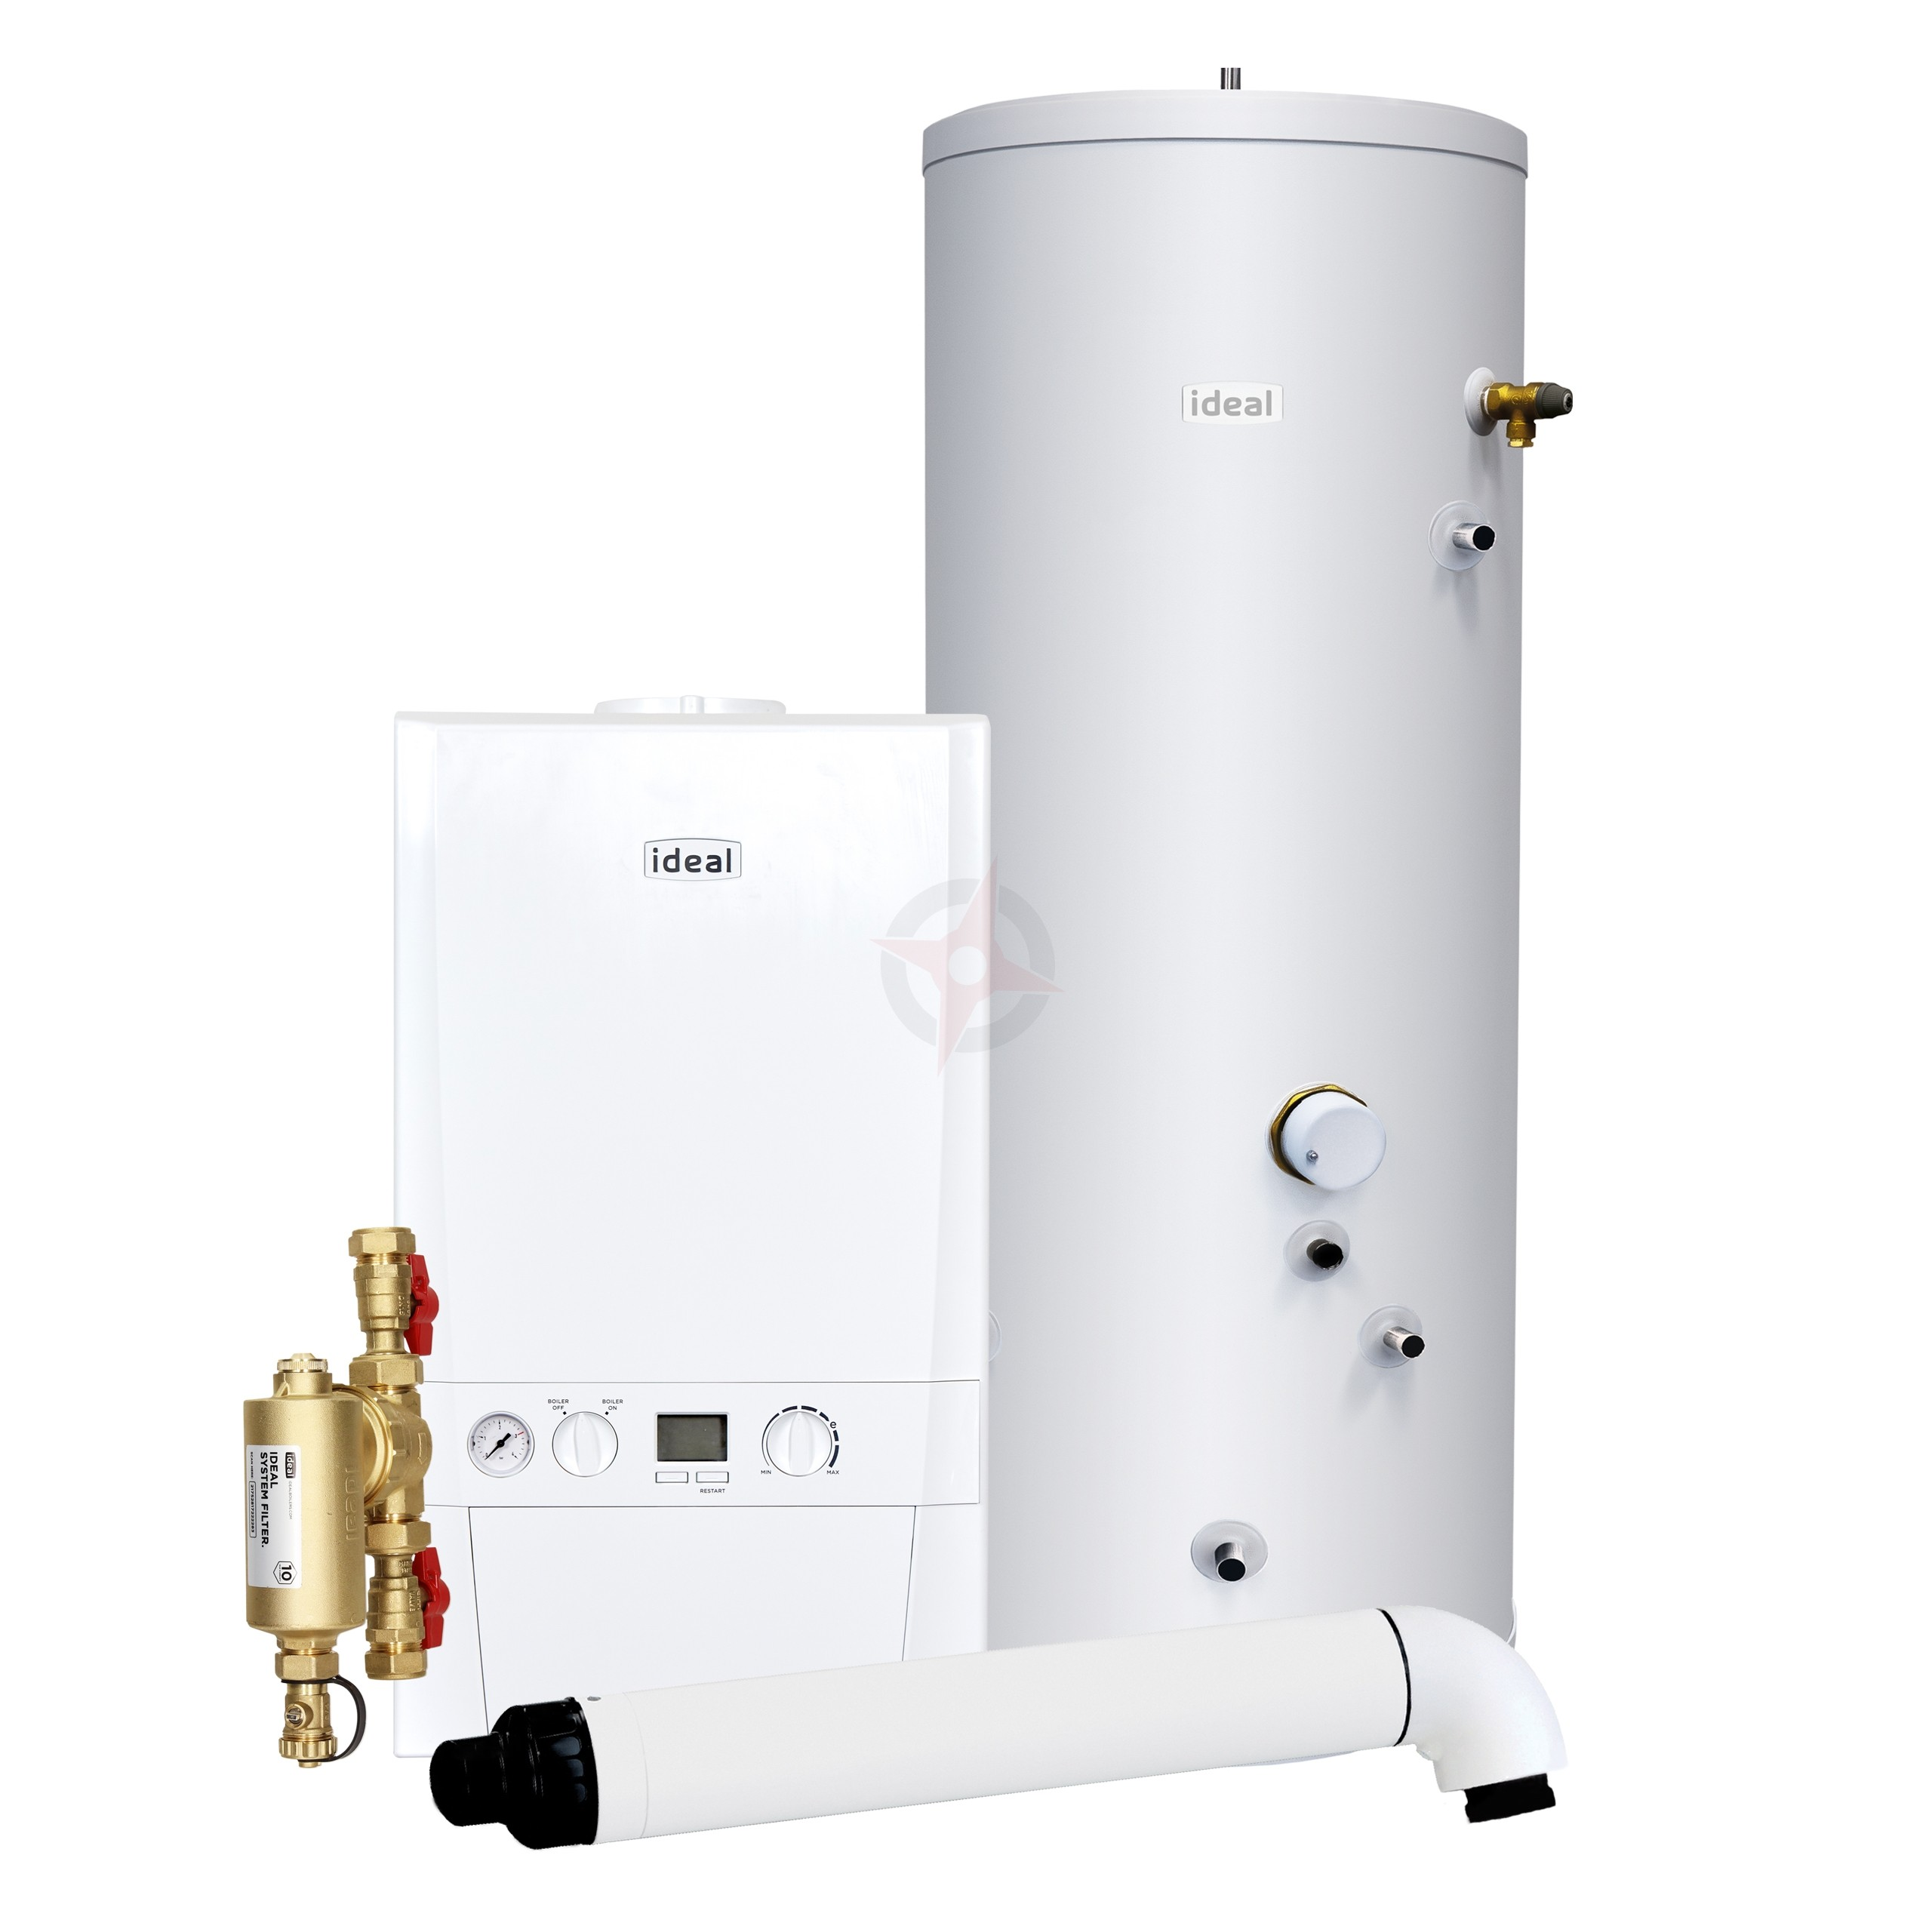 Ideal Logic Max 30 System Boiler, Filter, Horizontal Flue & Indirect Cylinder